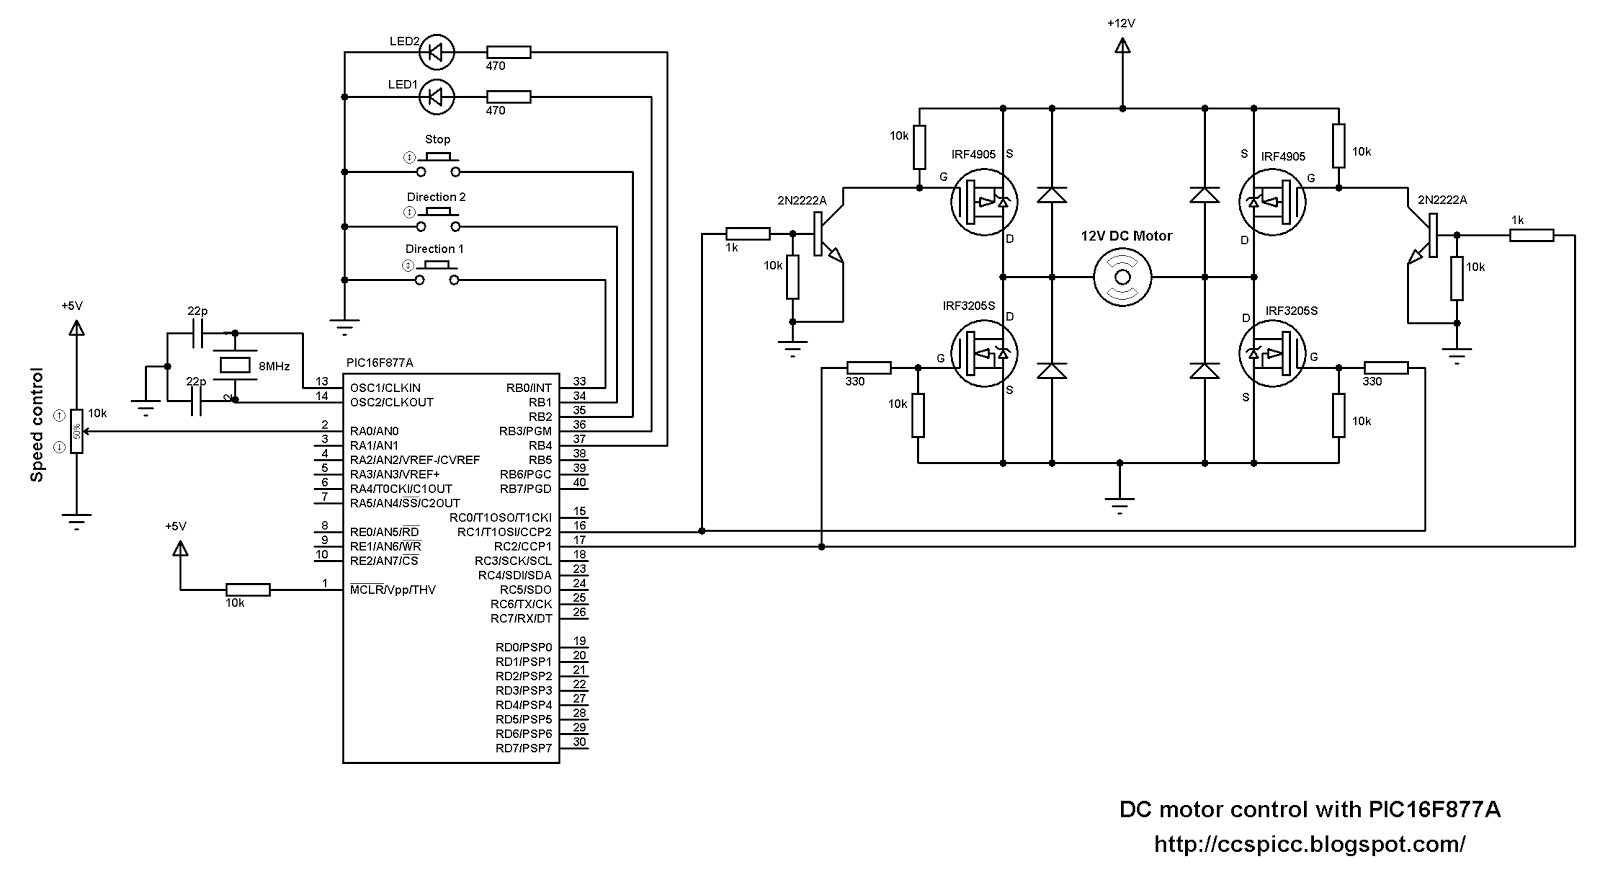 hight resolution of dc motor speed and direction control with pic16f877a and h bridge brushless dc motor control circuit schematic using microchip pic16f877